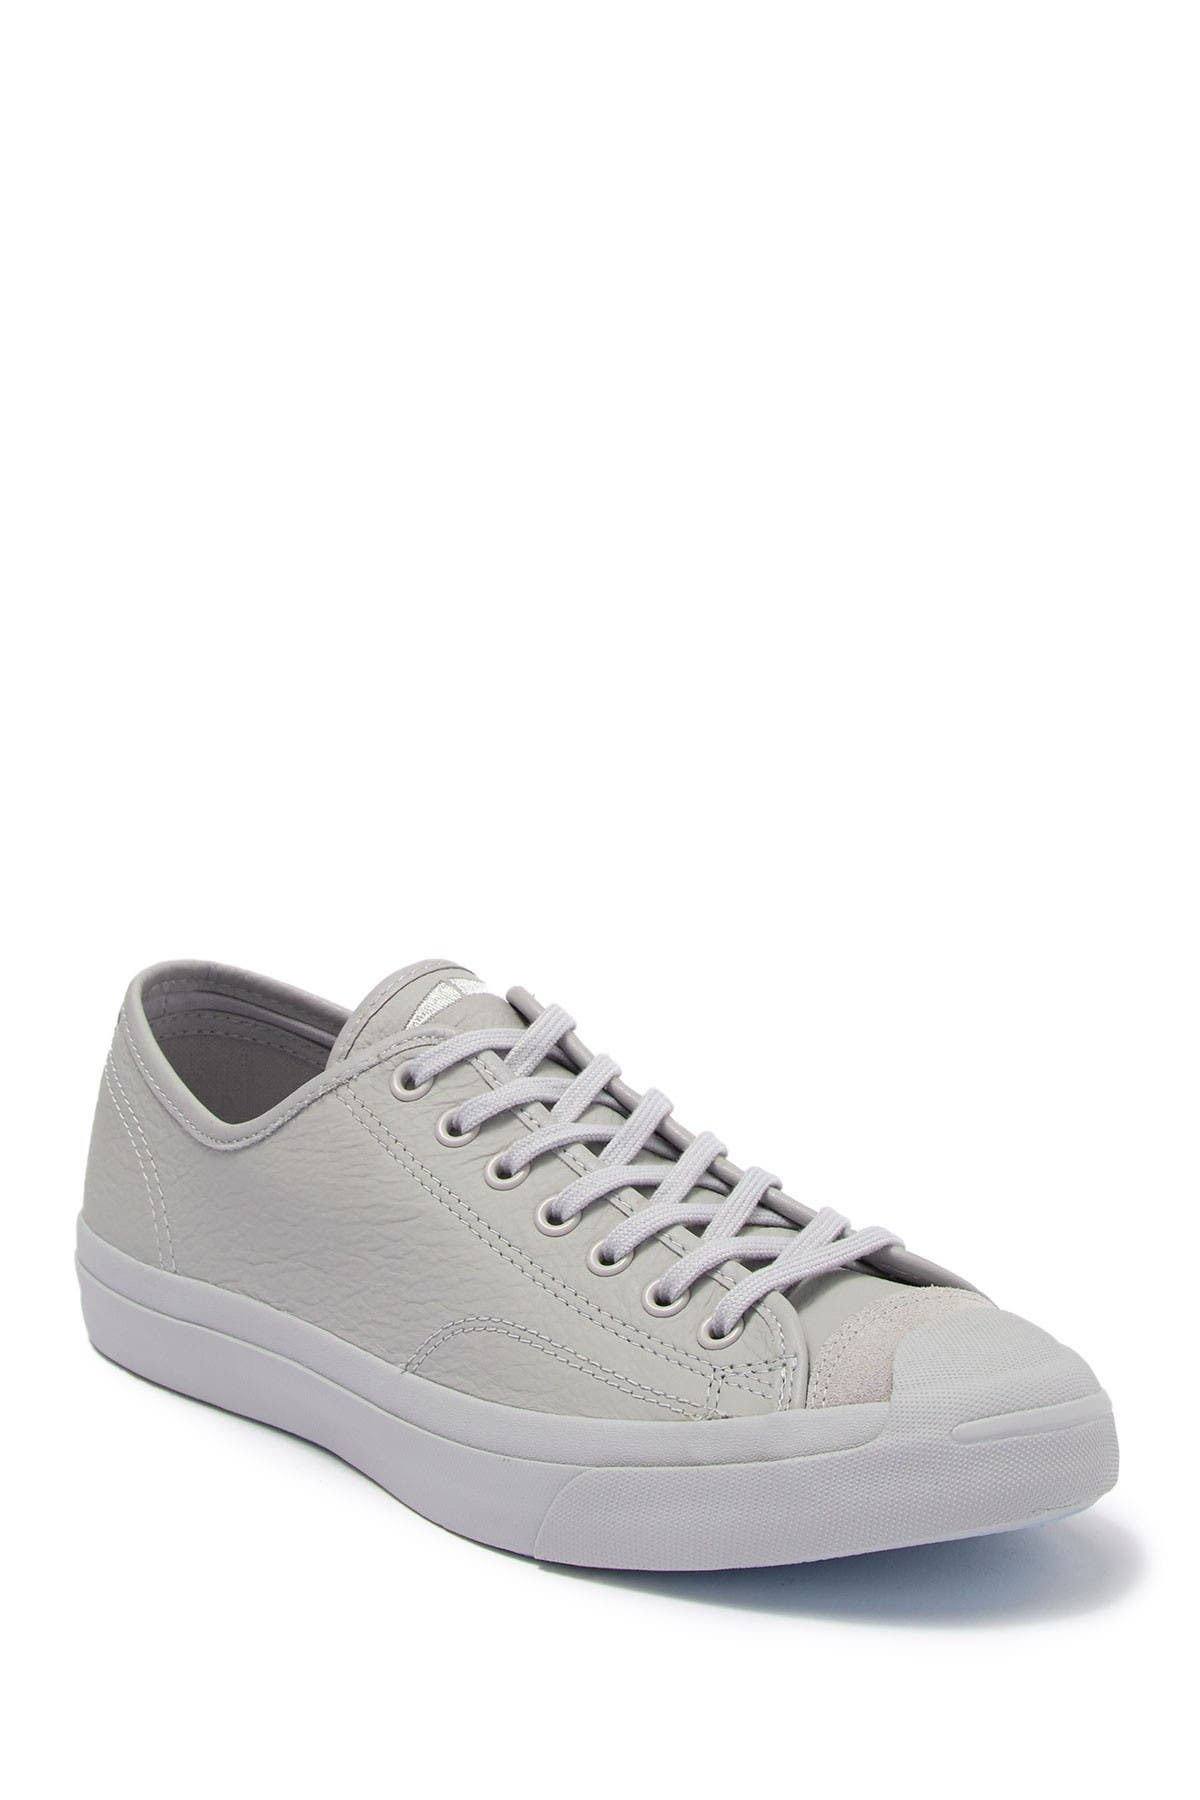 Converse | Jack Purcell Leather Sneaker